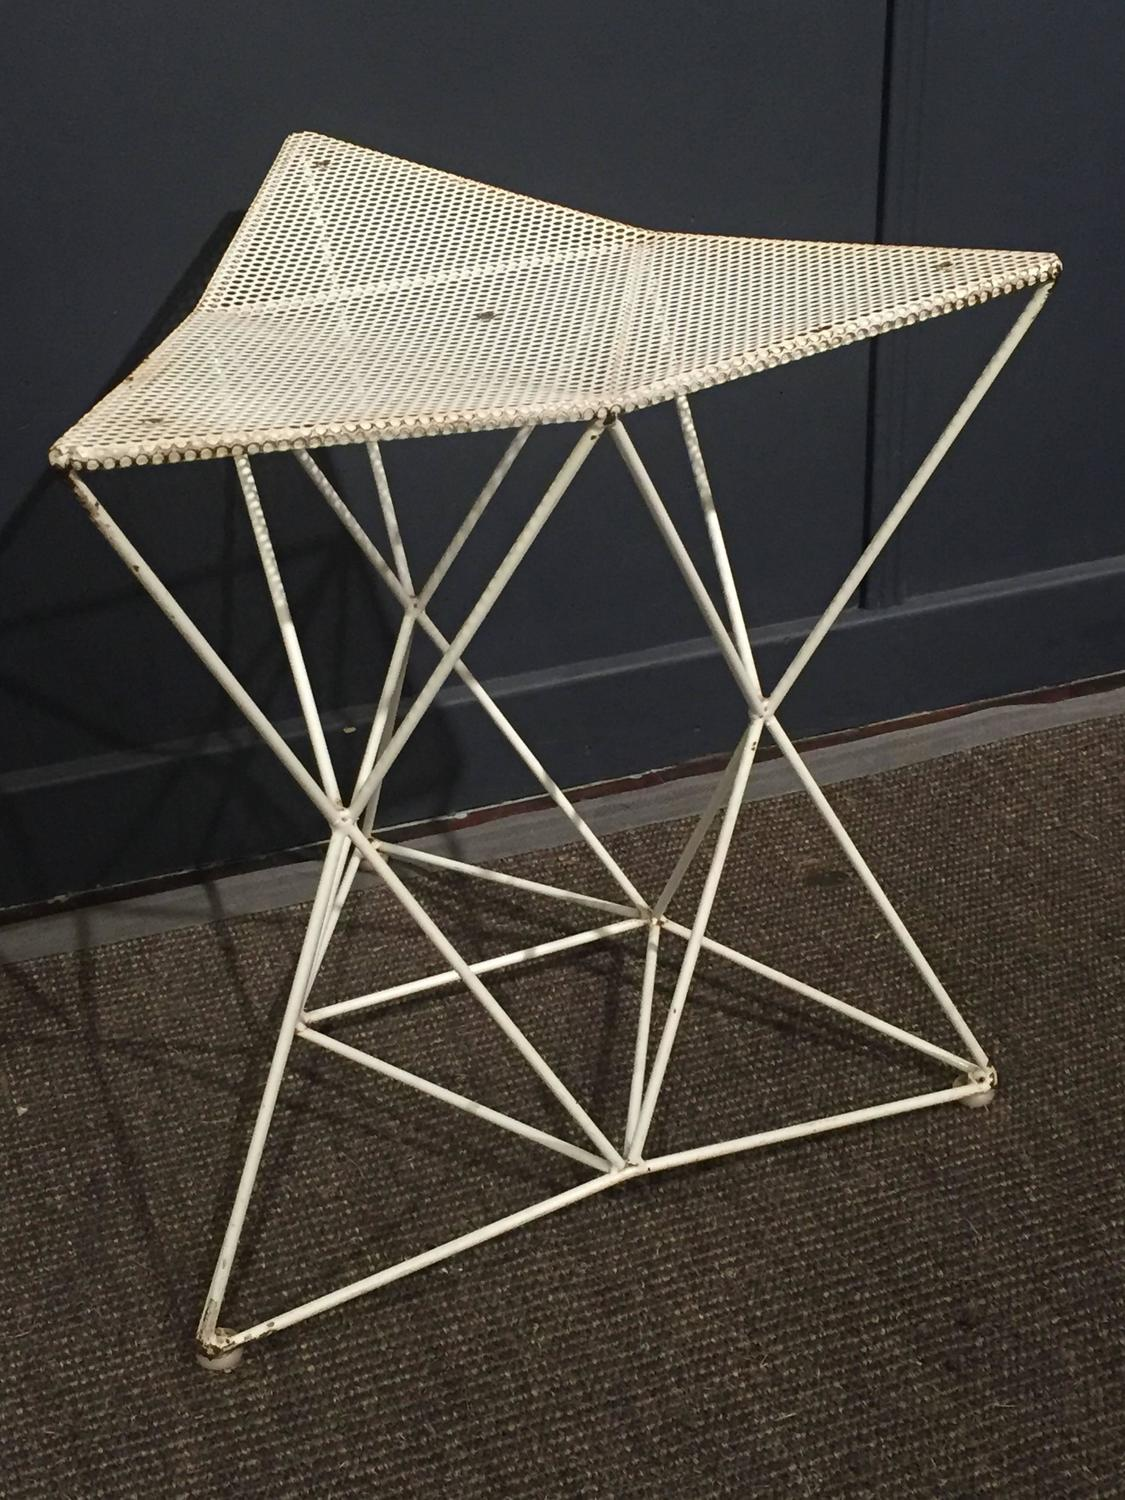 Triangular Origami Stool For Sale At 1stdibs